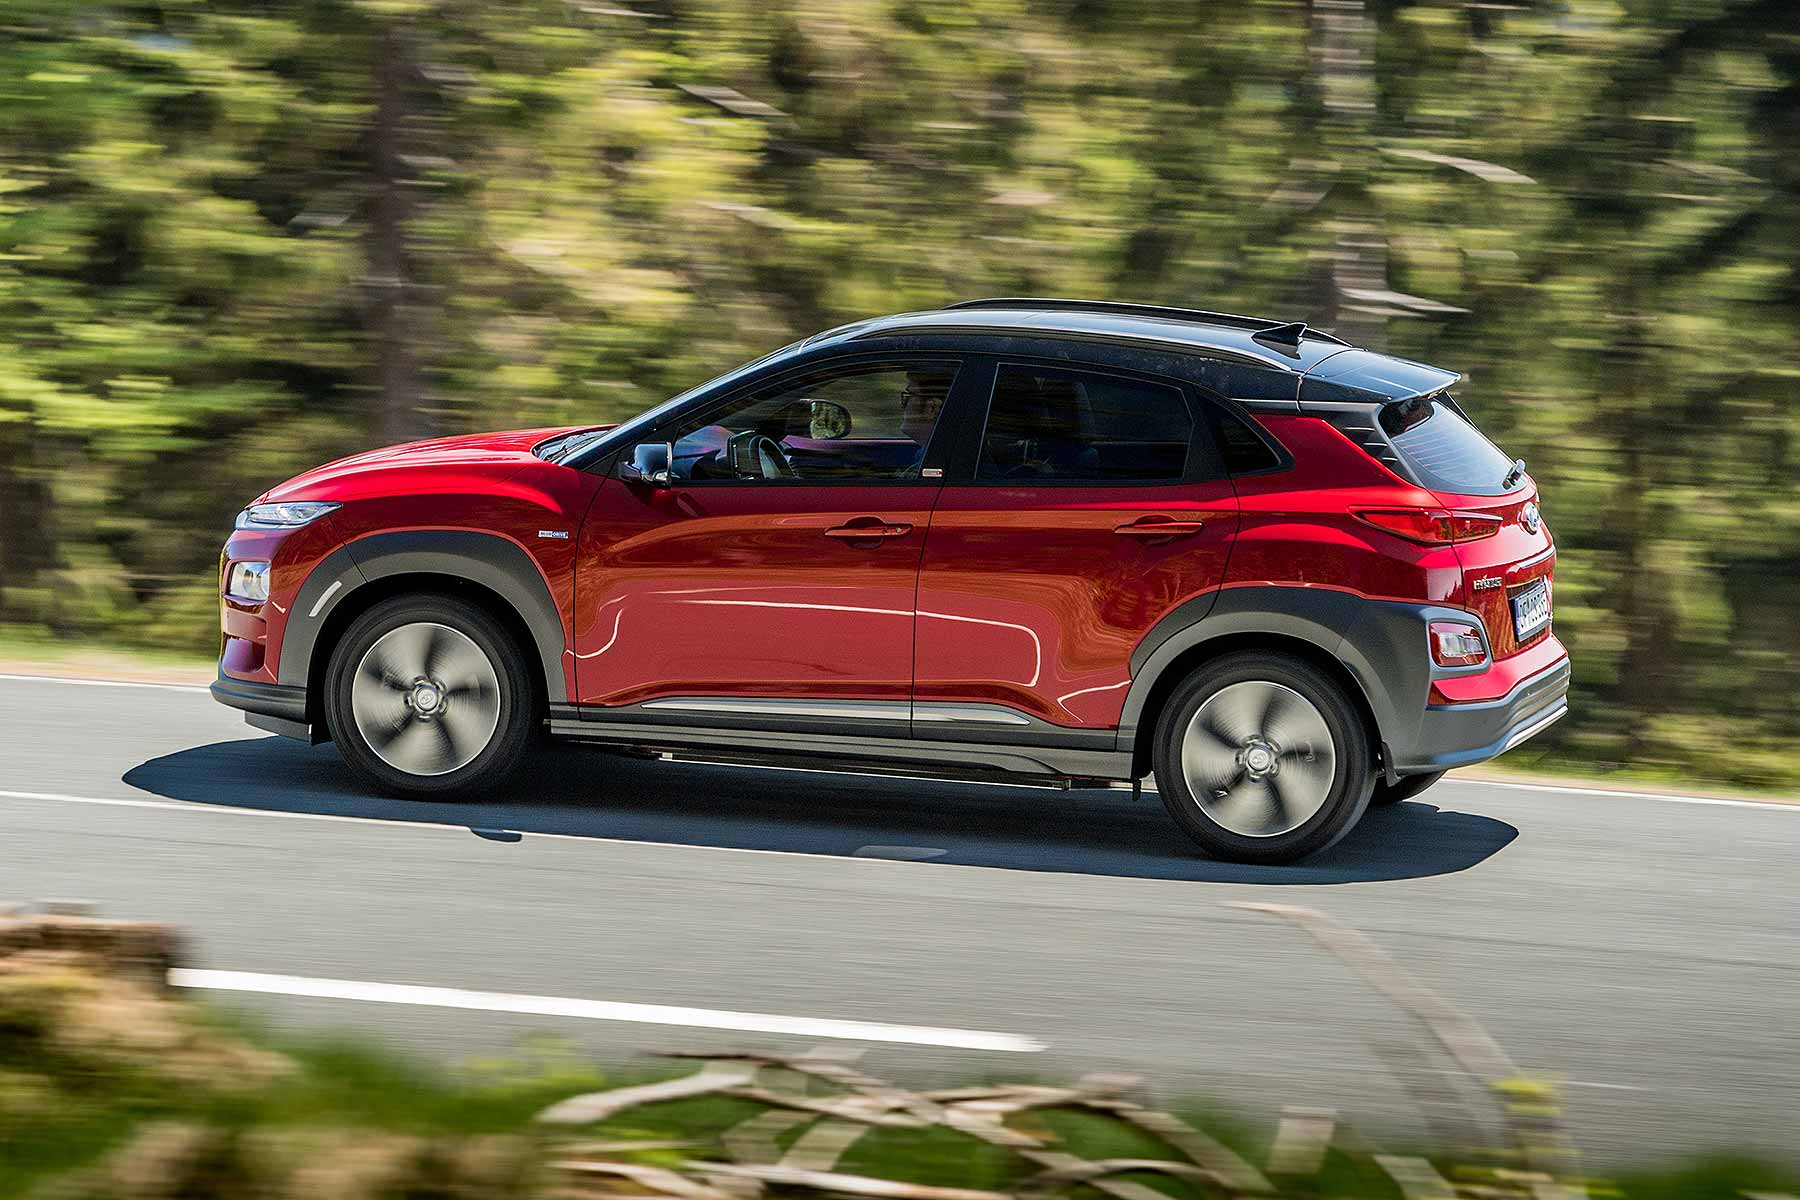 hyundai kona electric priced from 29 495 but it may fall further motoring research. Black Bedroom Furniture Sets. Home Design Ideas